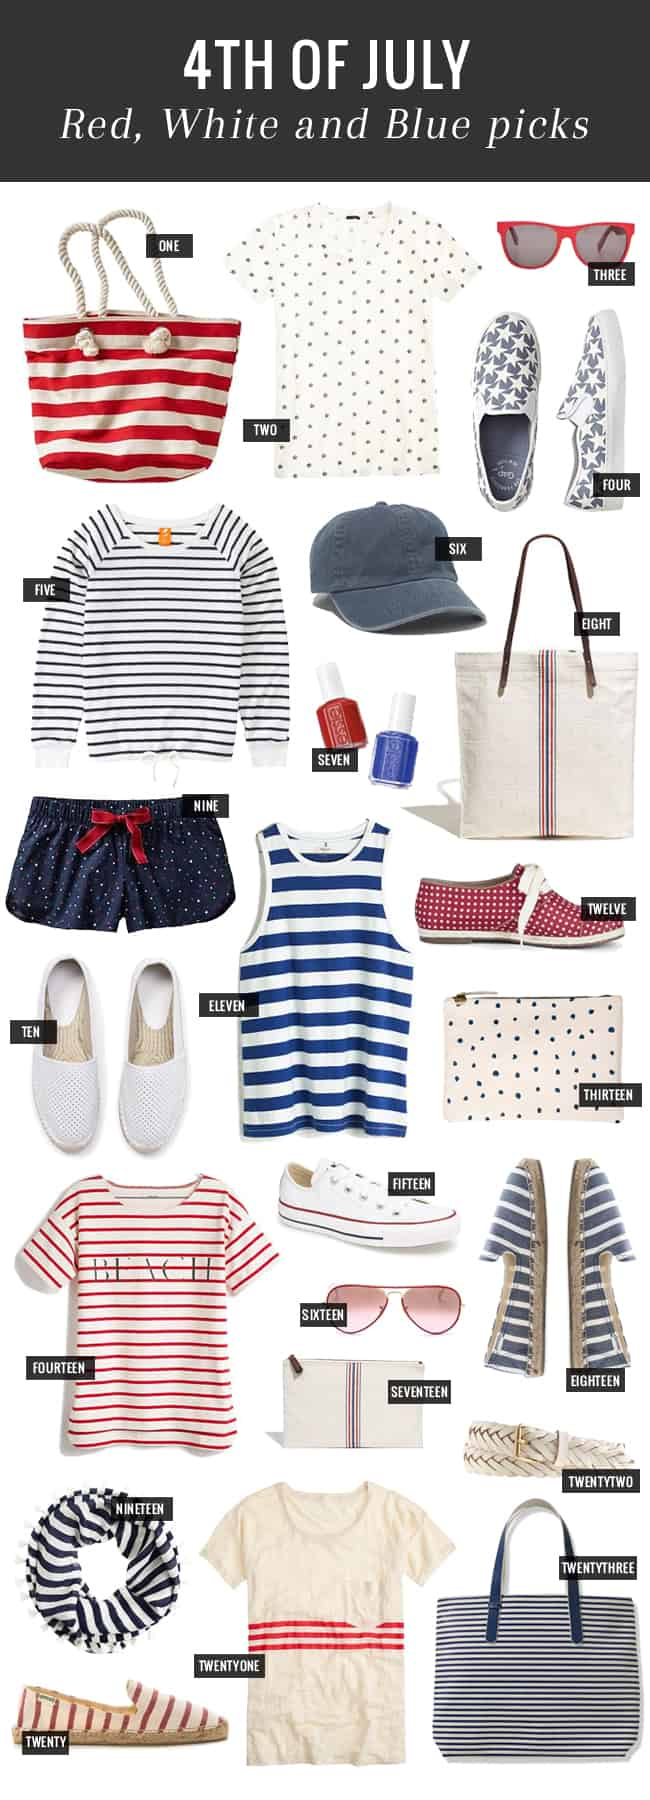 23 Red, White & Blue Buys for 4th of July | Hello Glow